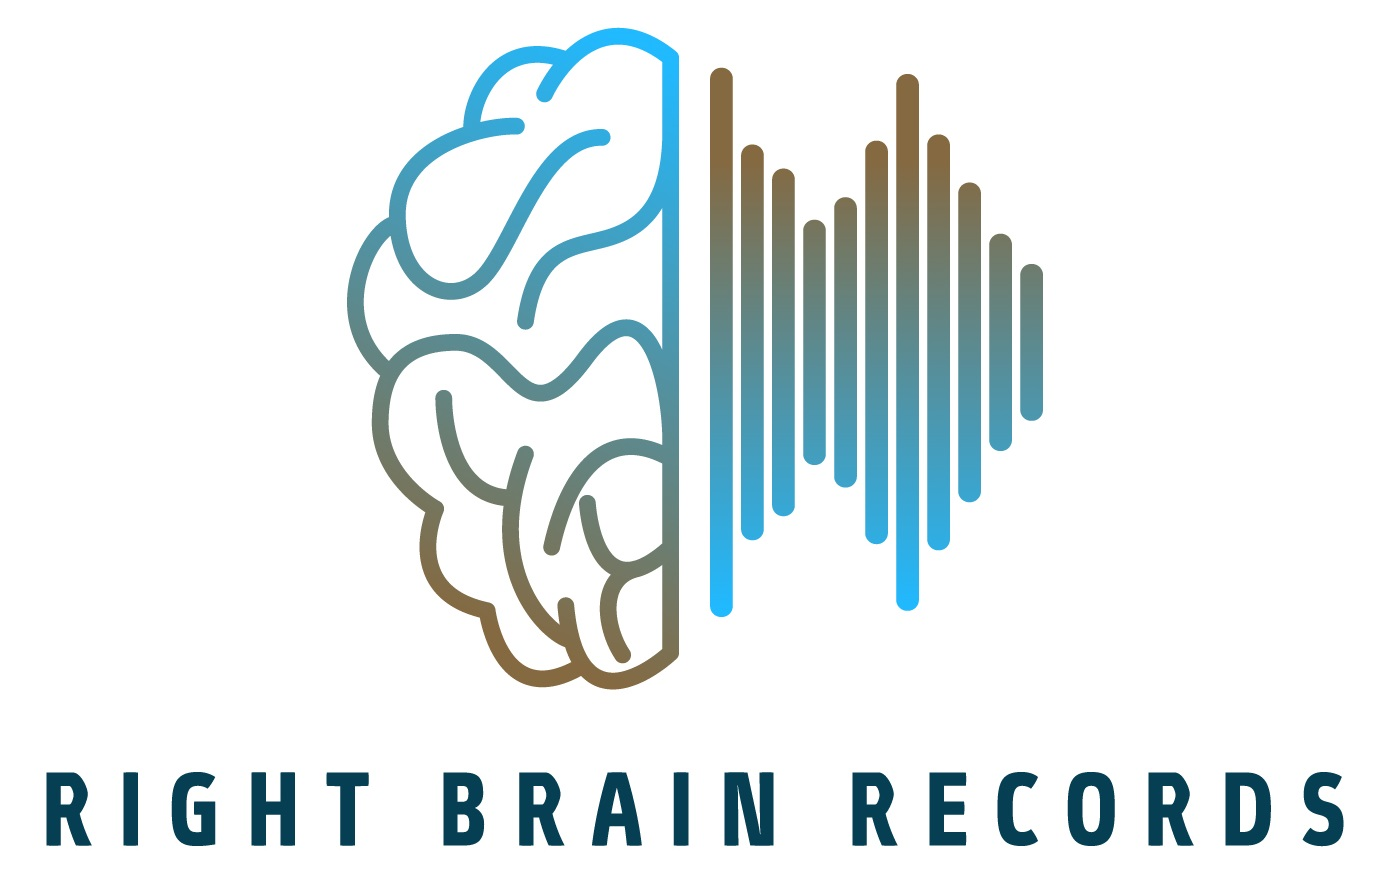 Right Brain Records